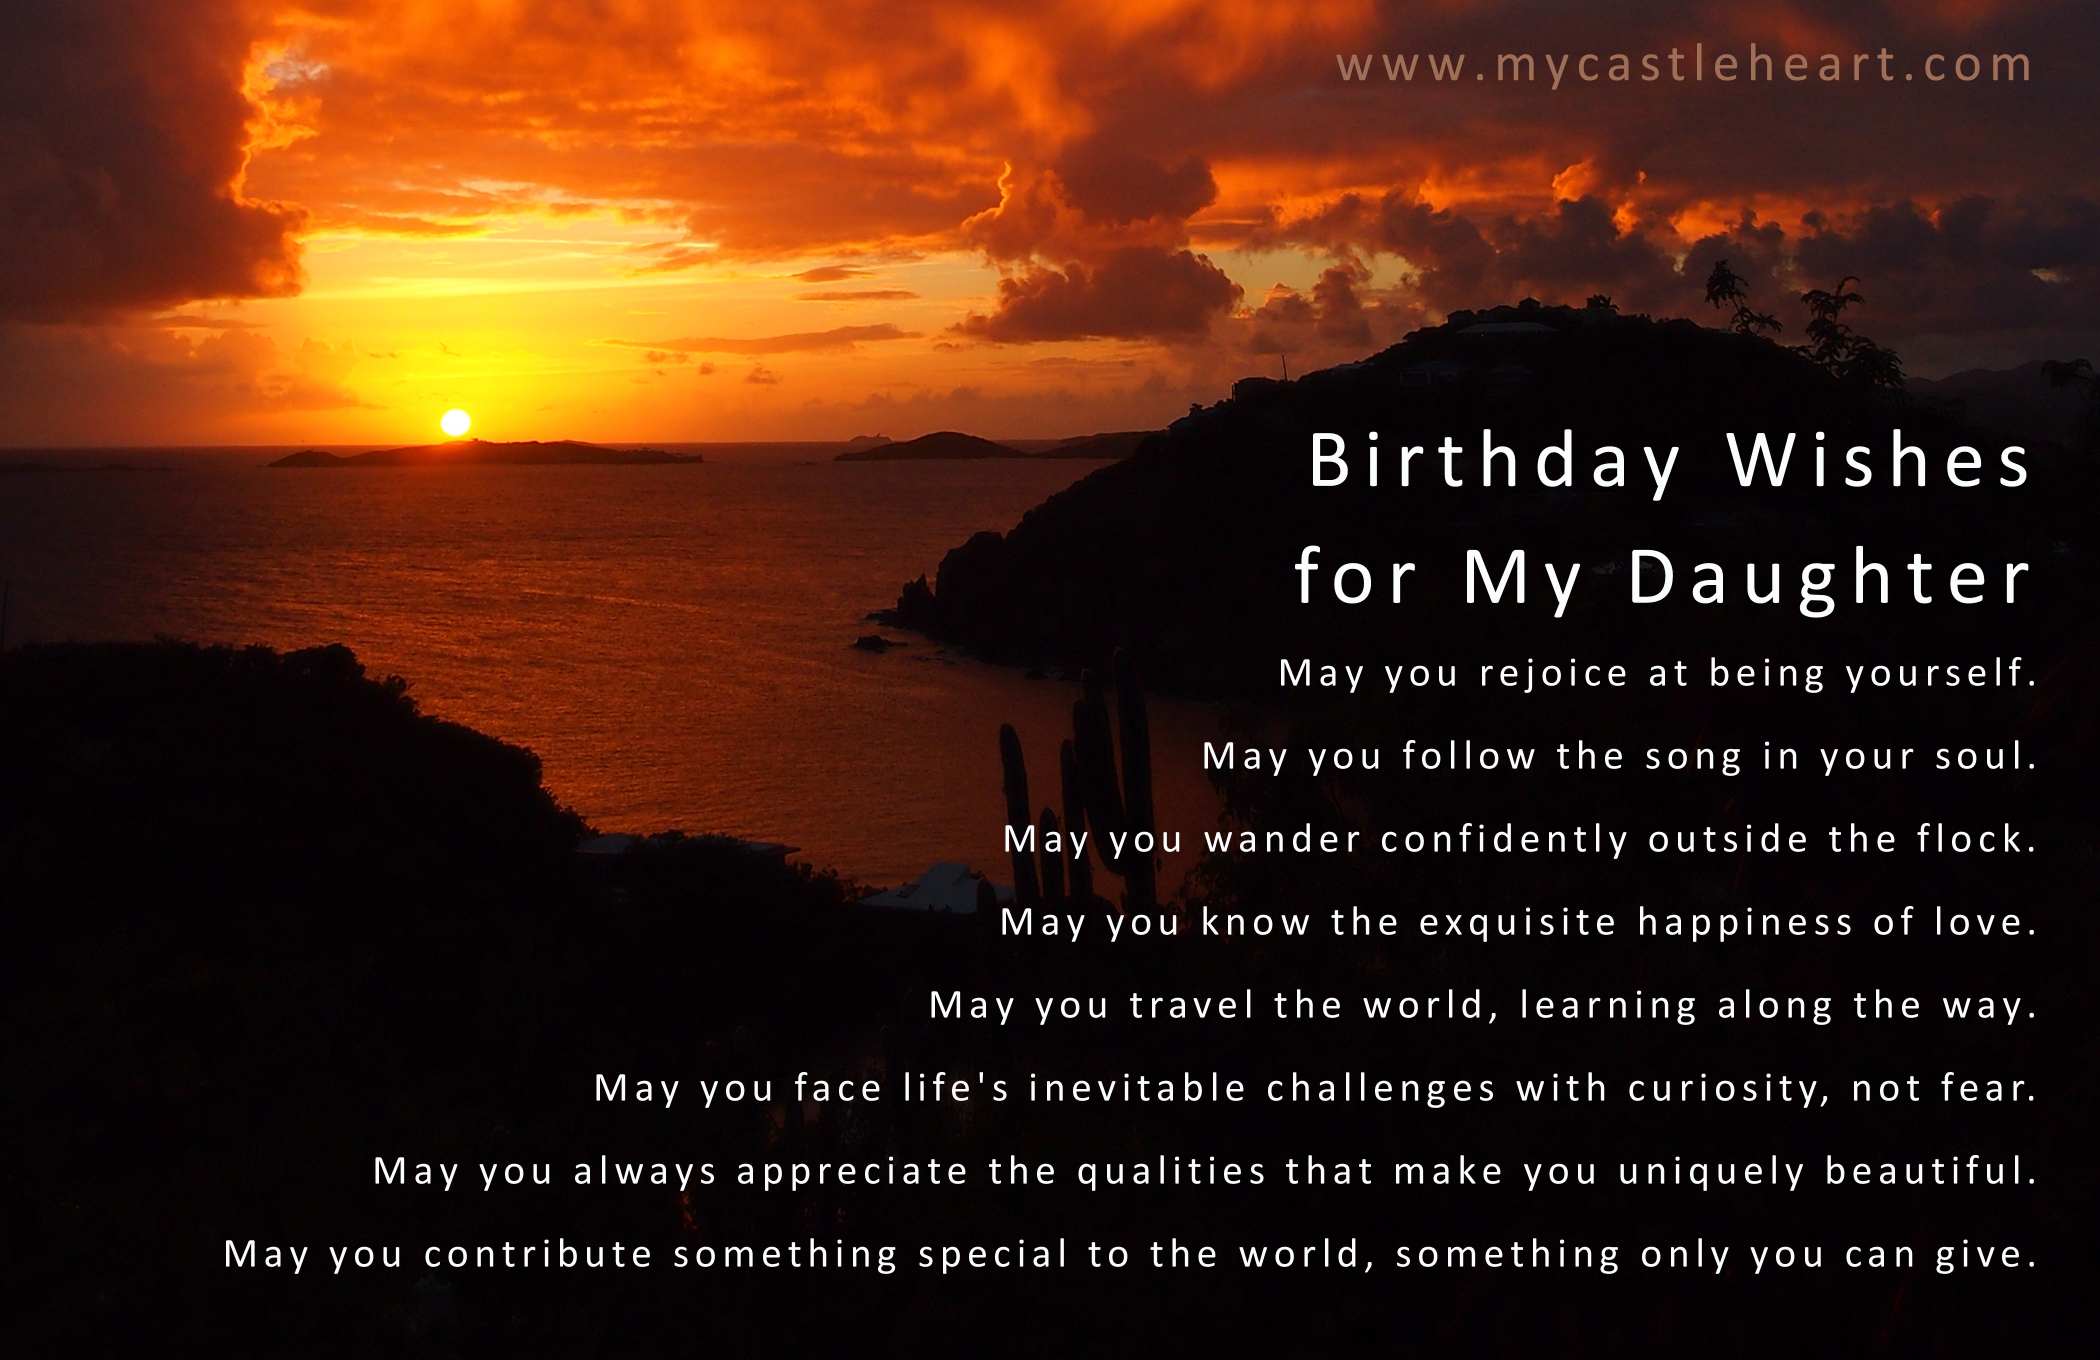 images of birthday wishes for daughter - photo #3